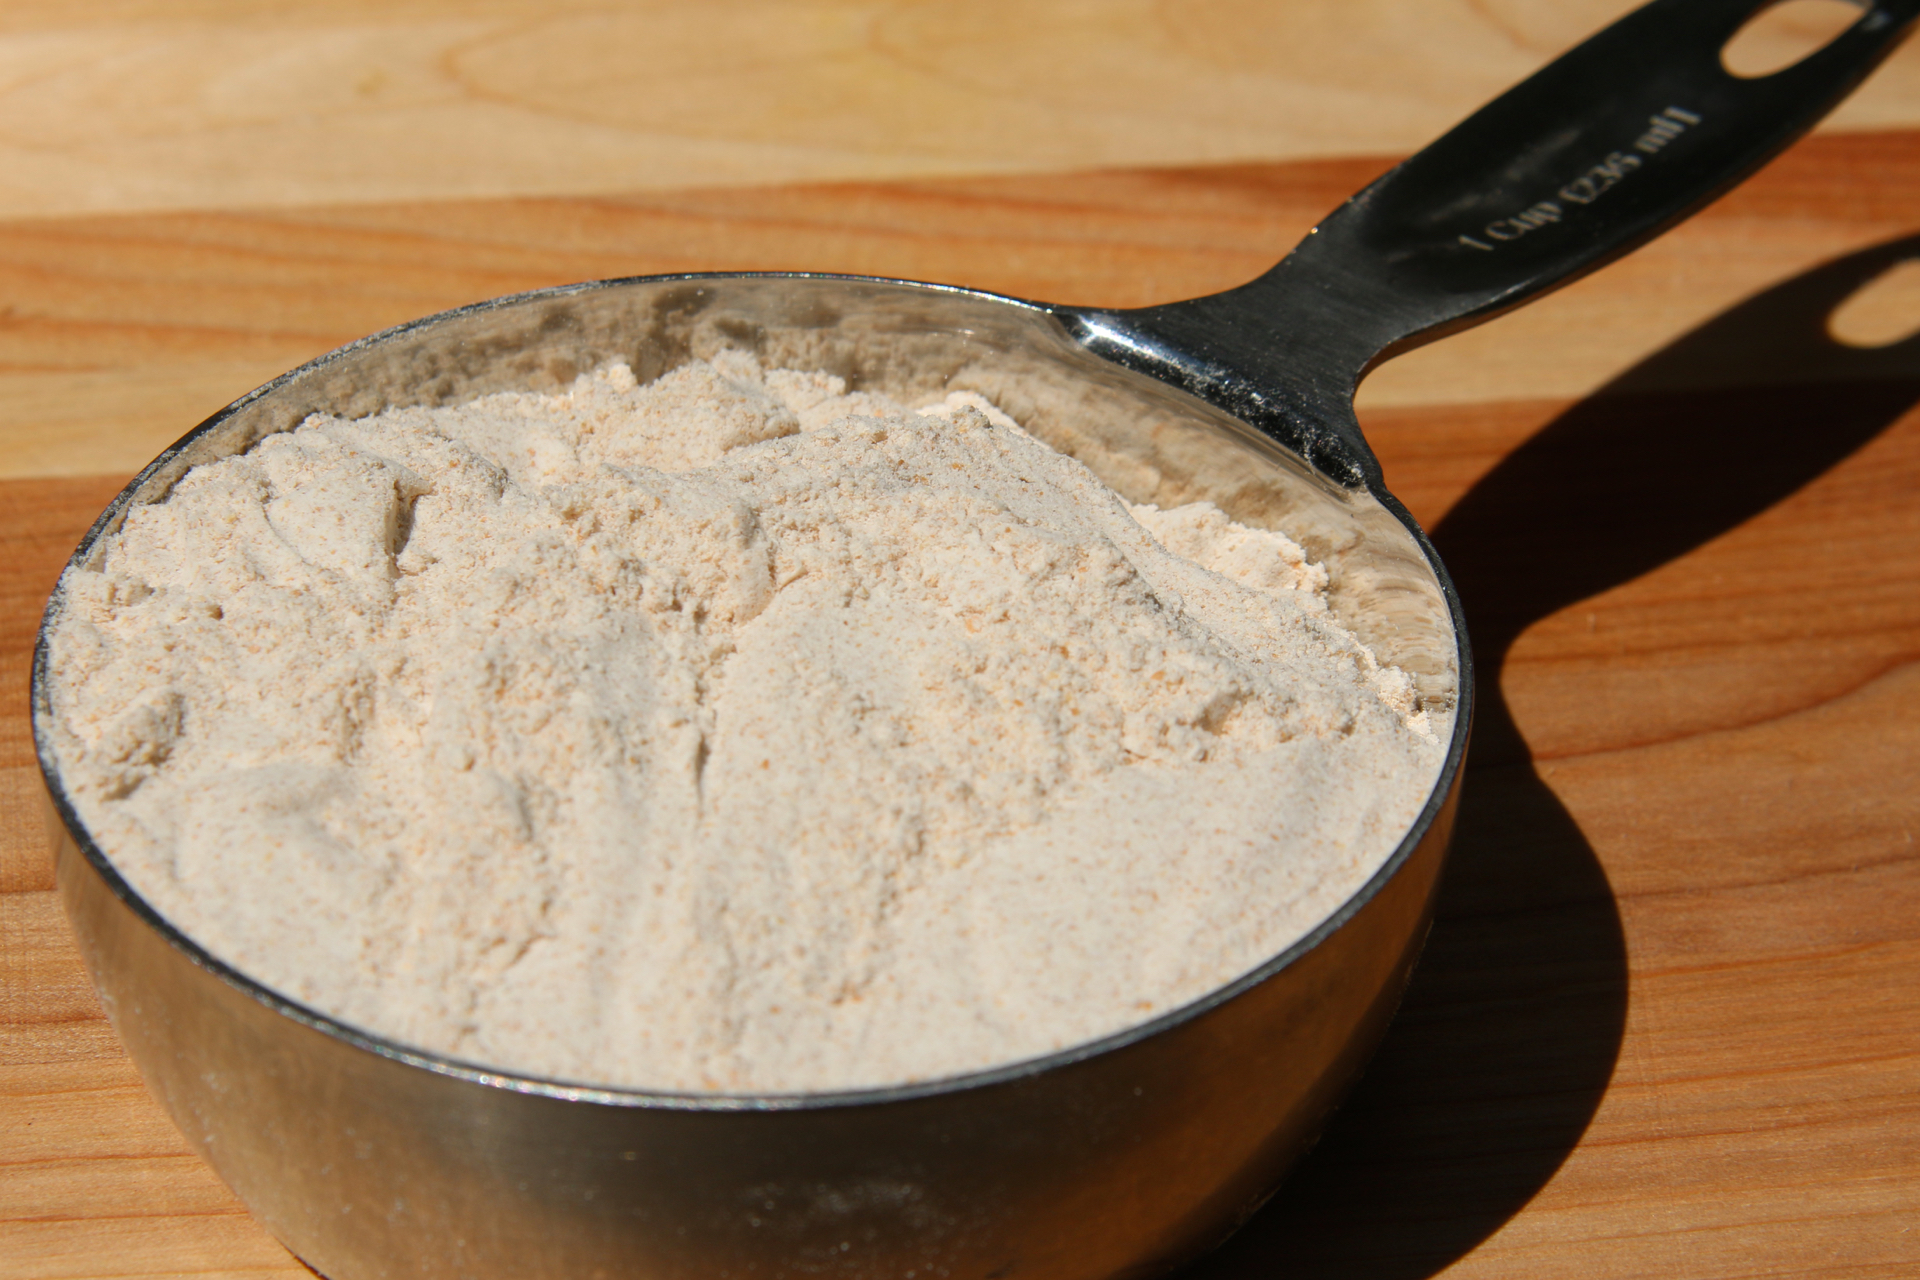 Whole-wheat flour.